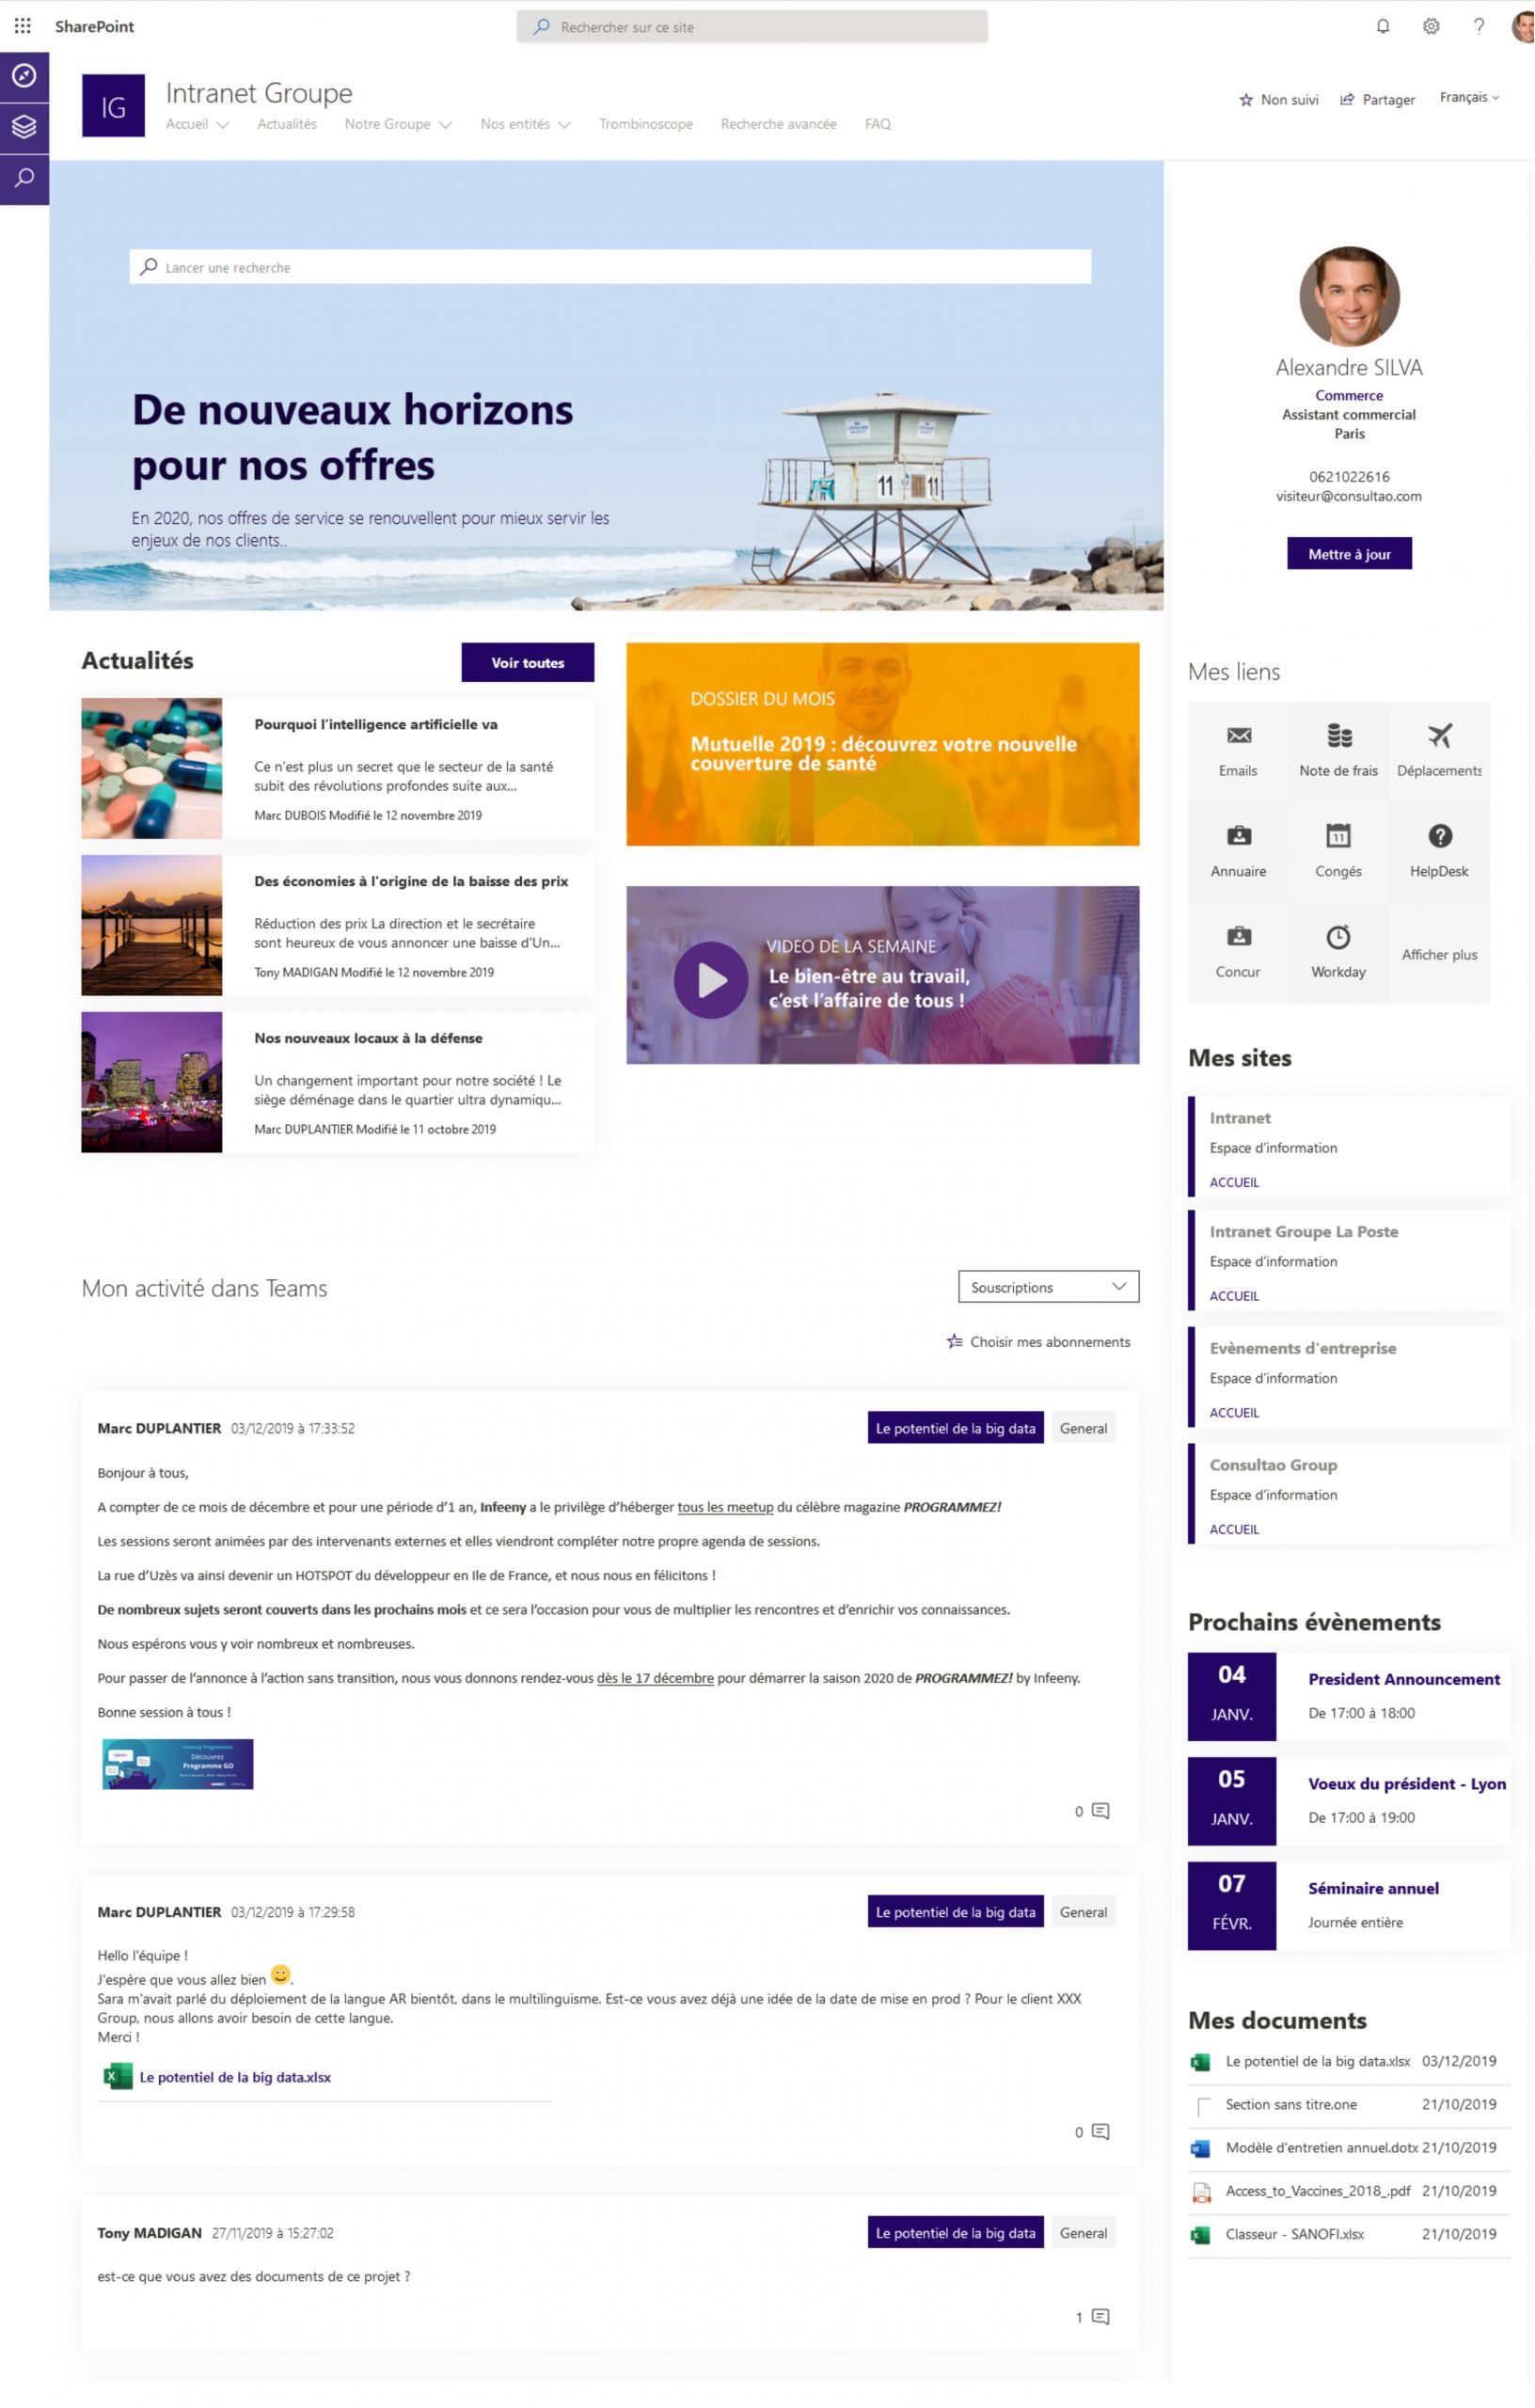 Digital Workplace communication intranet groupe filiales